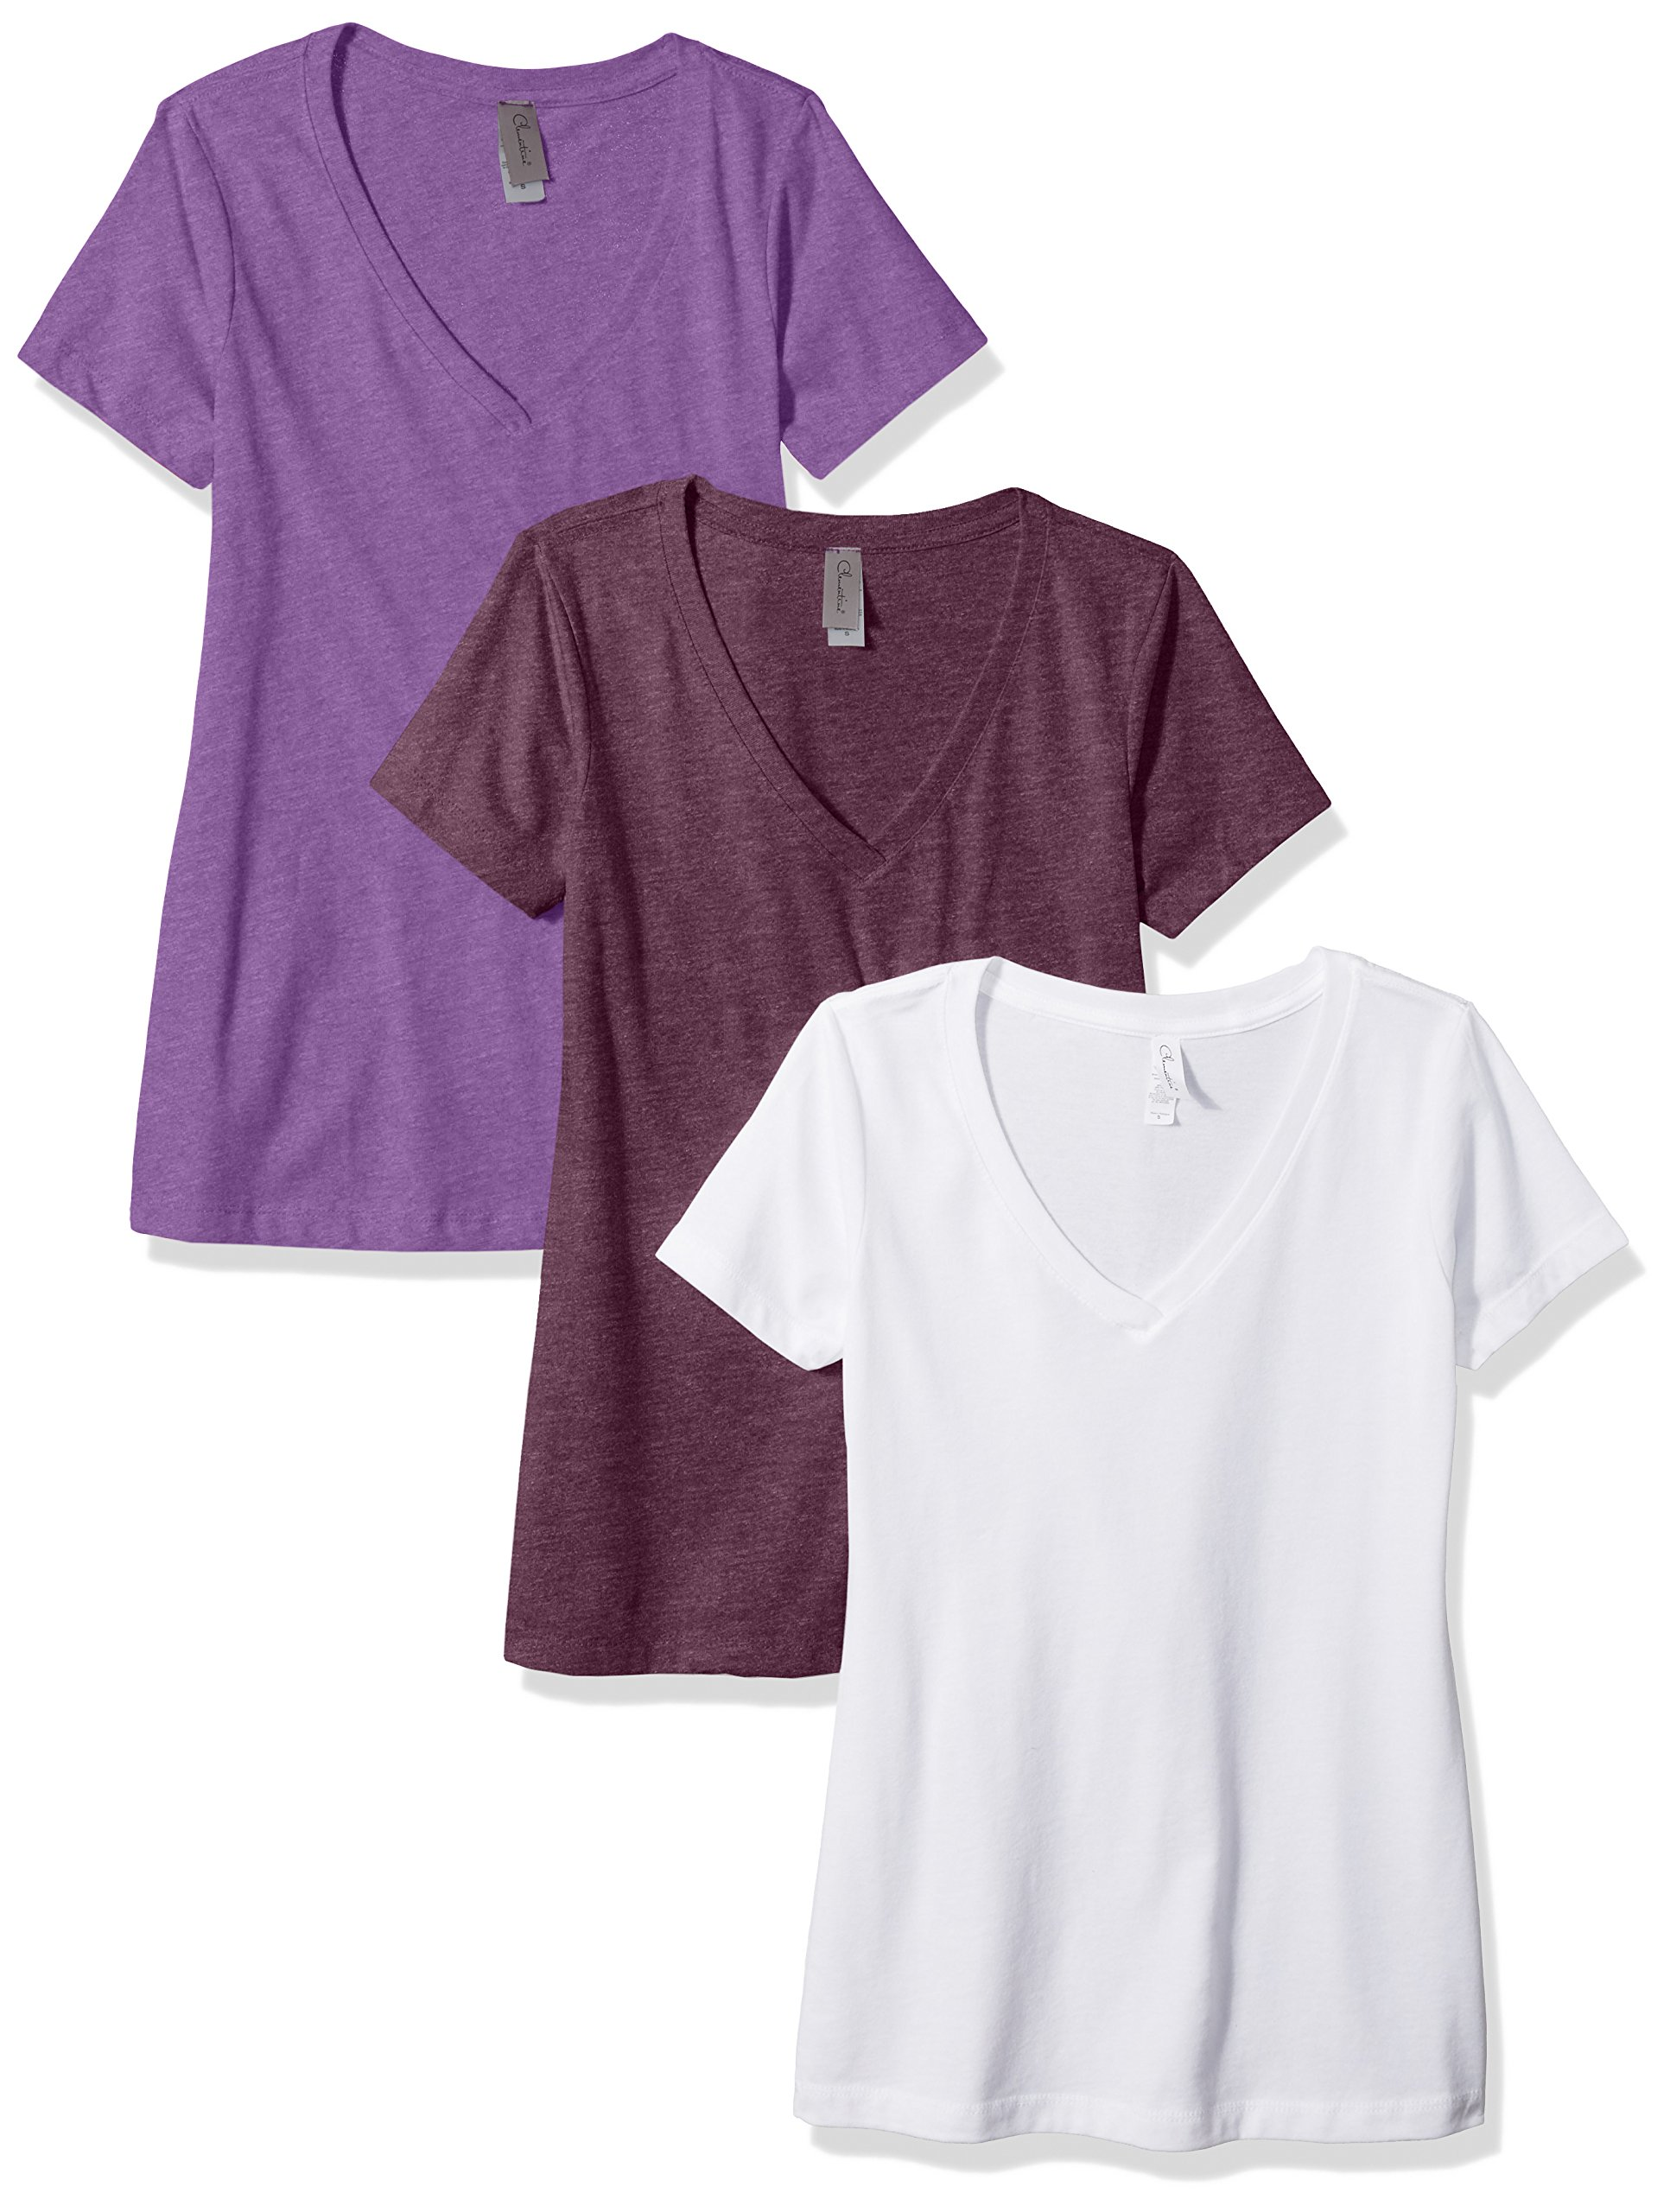 Clementine Apparel Women's Petite Plus Deep V Neck Tee (Pack of 3), WhitePlumPurple Berry, XXL